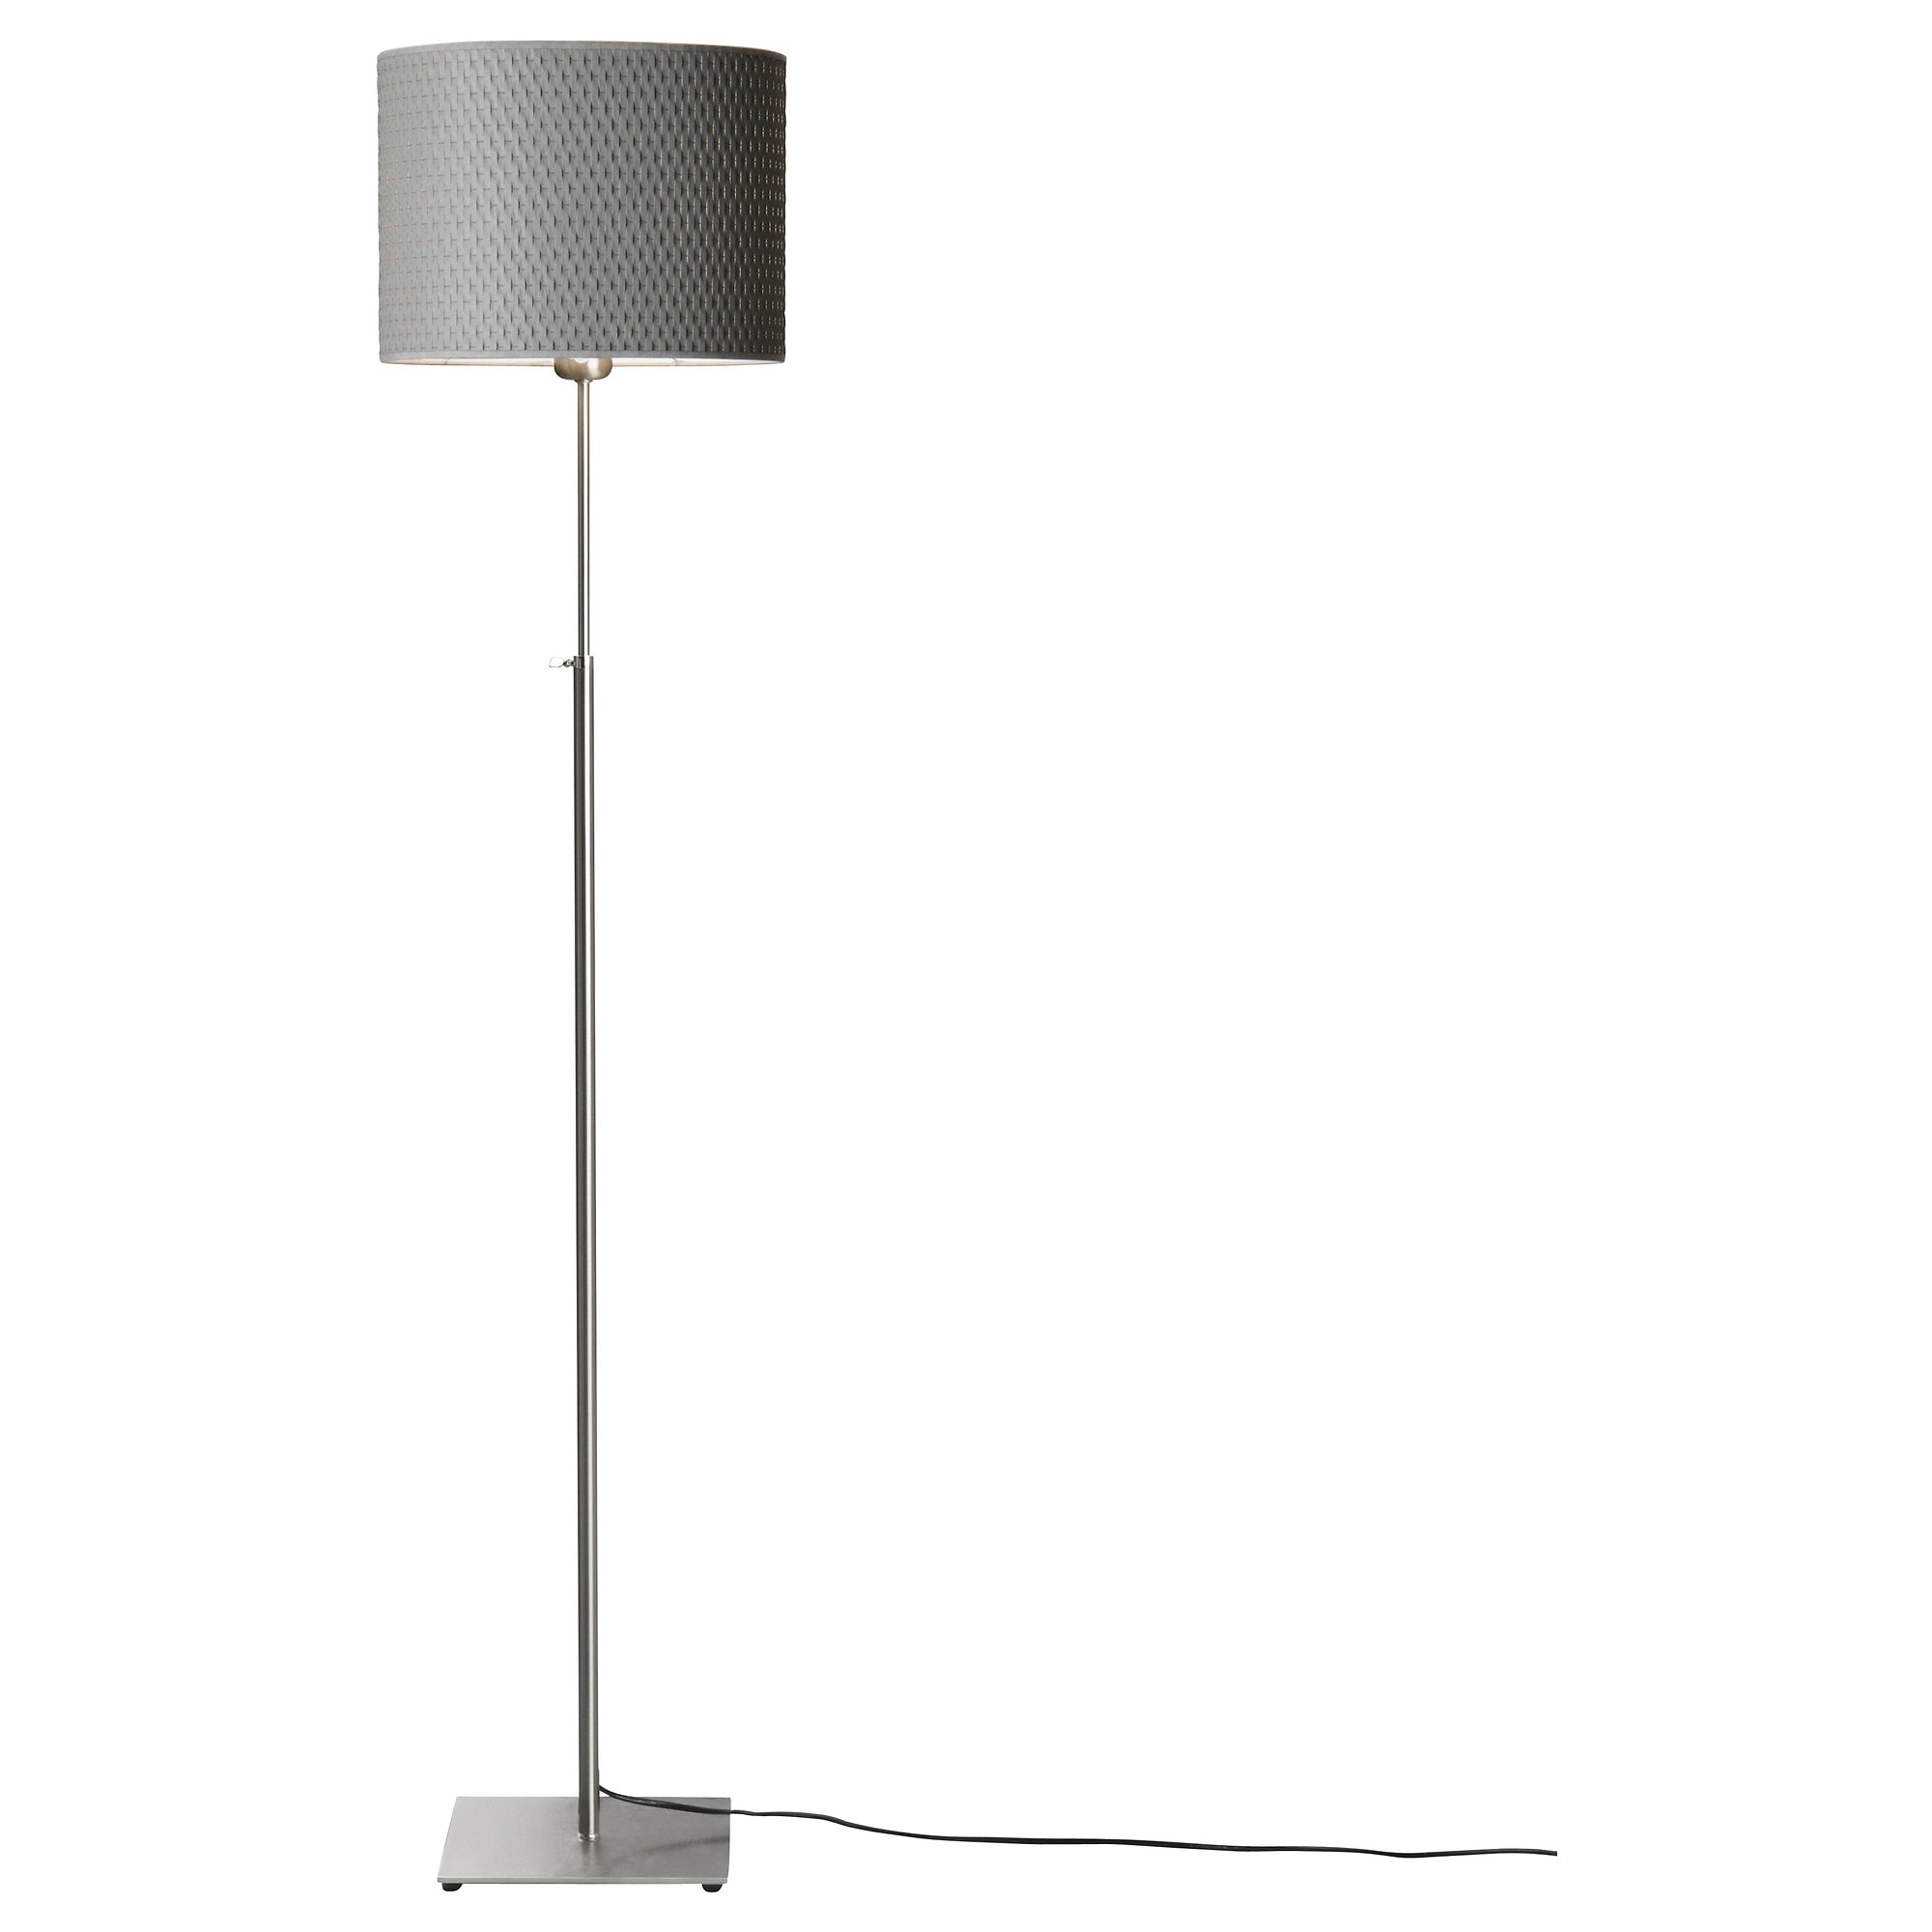 Floor lamps modern contemporary floor lamps ikea alng floor lamp with led bulb nickel plated gray max 100 w jameslax Image collections